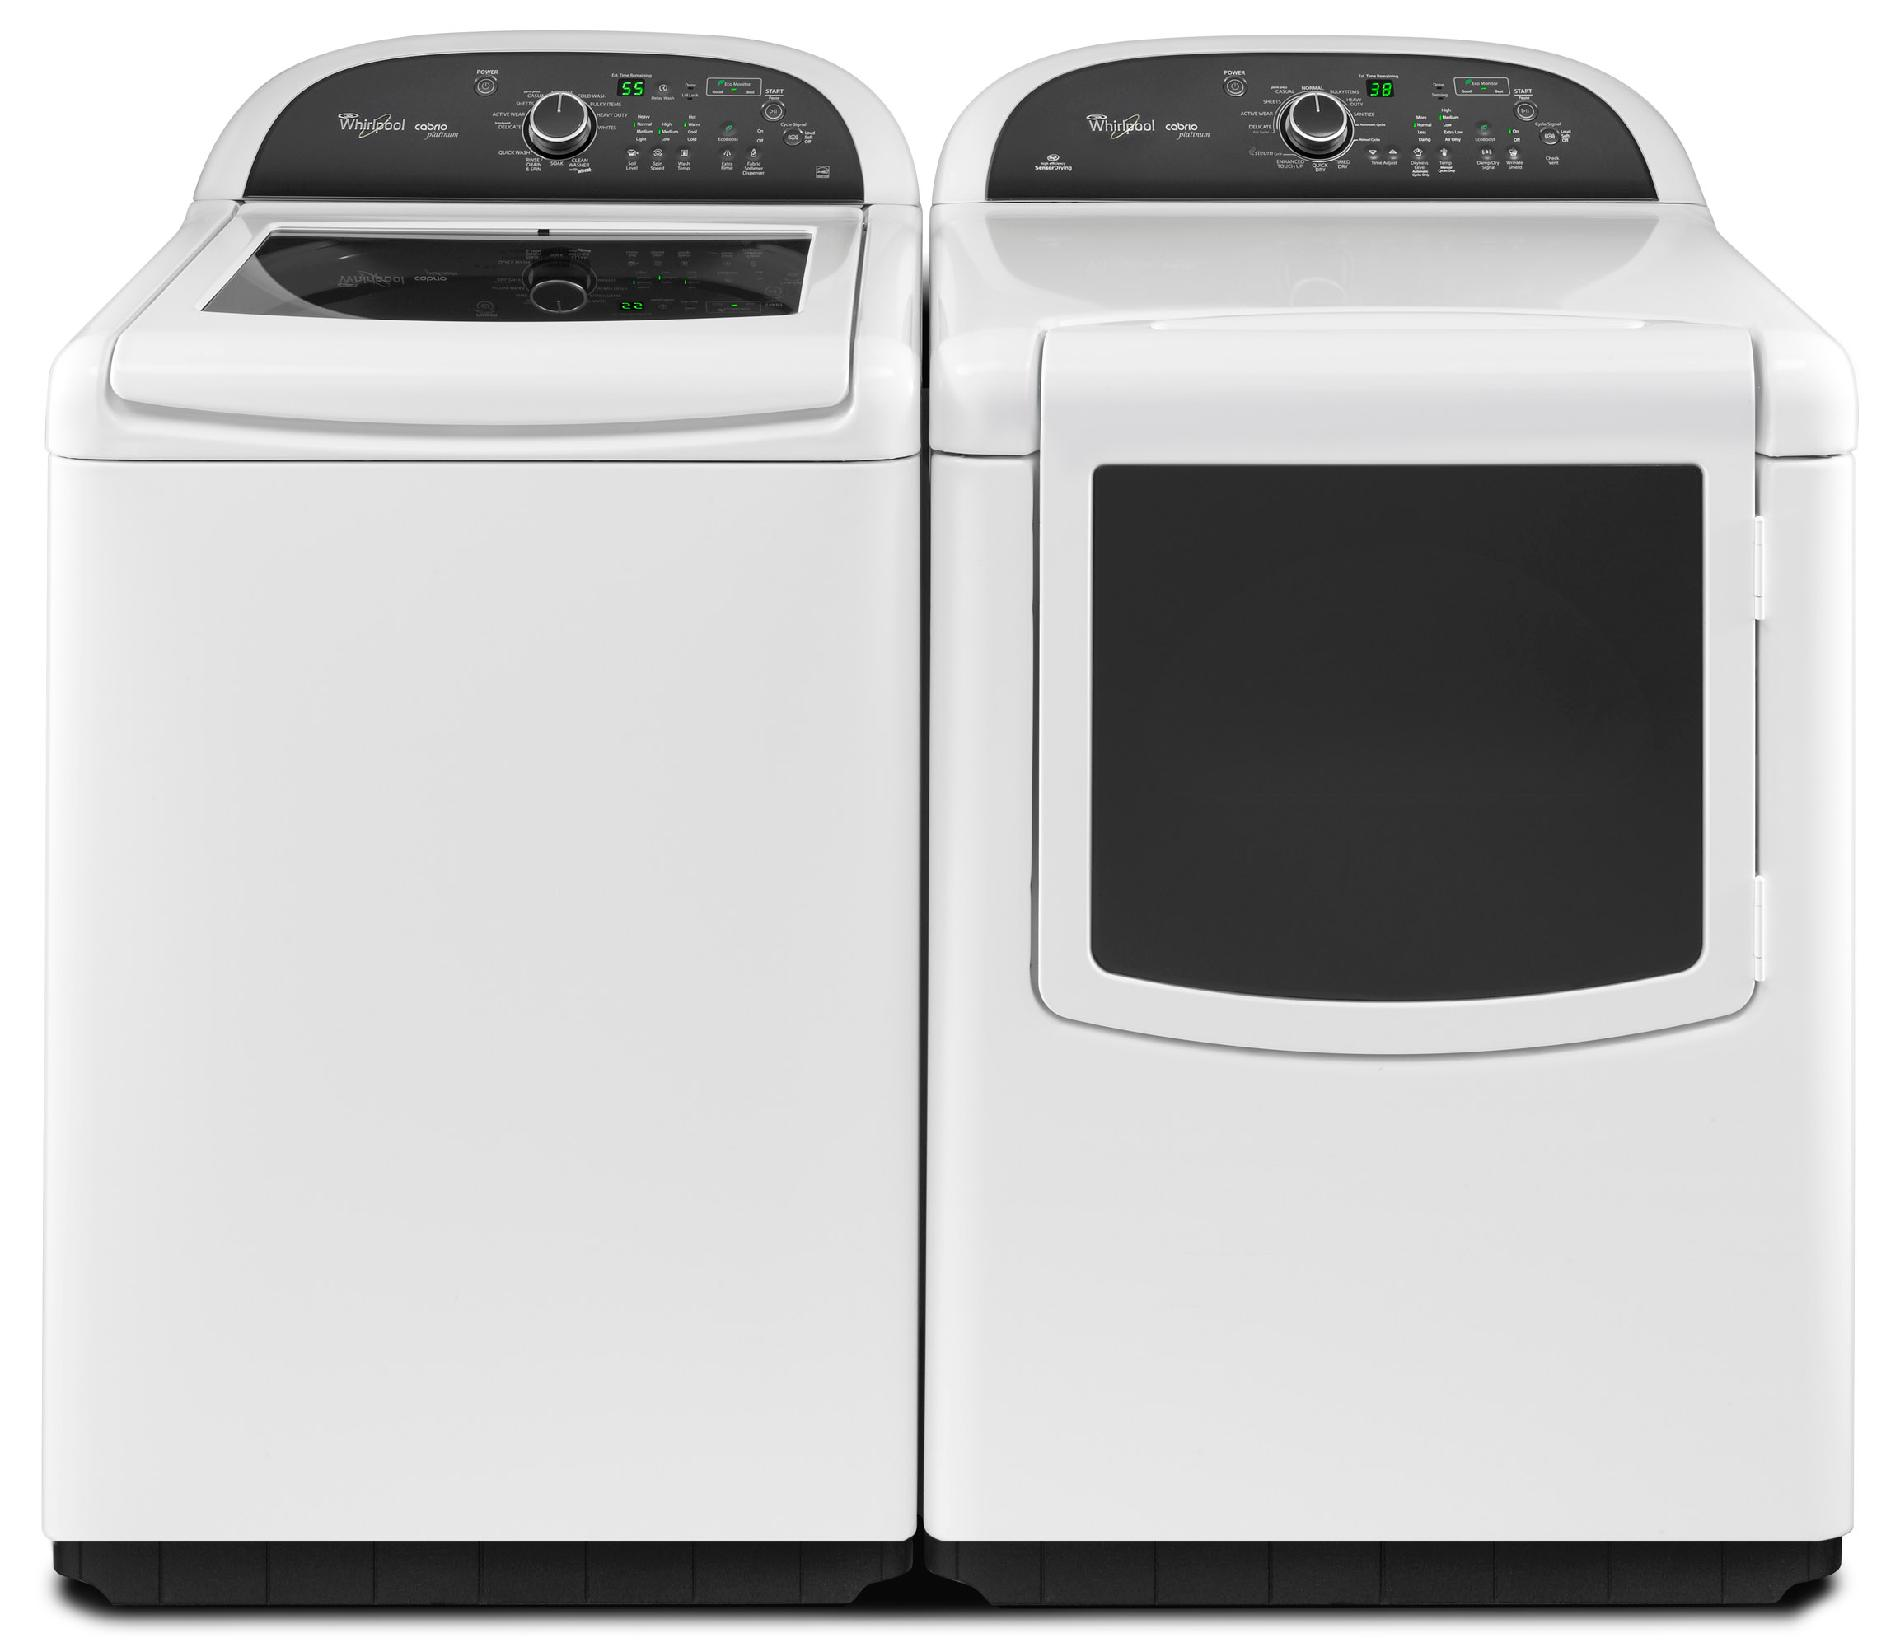 Whirlpool 4.8 cu. ft. Cabrio® Platinum HE Top-Load Washer w/ Greater Capacity - White